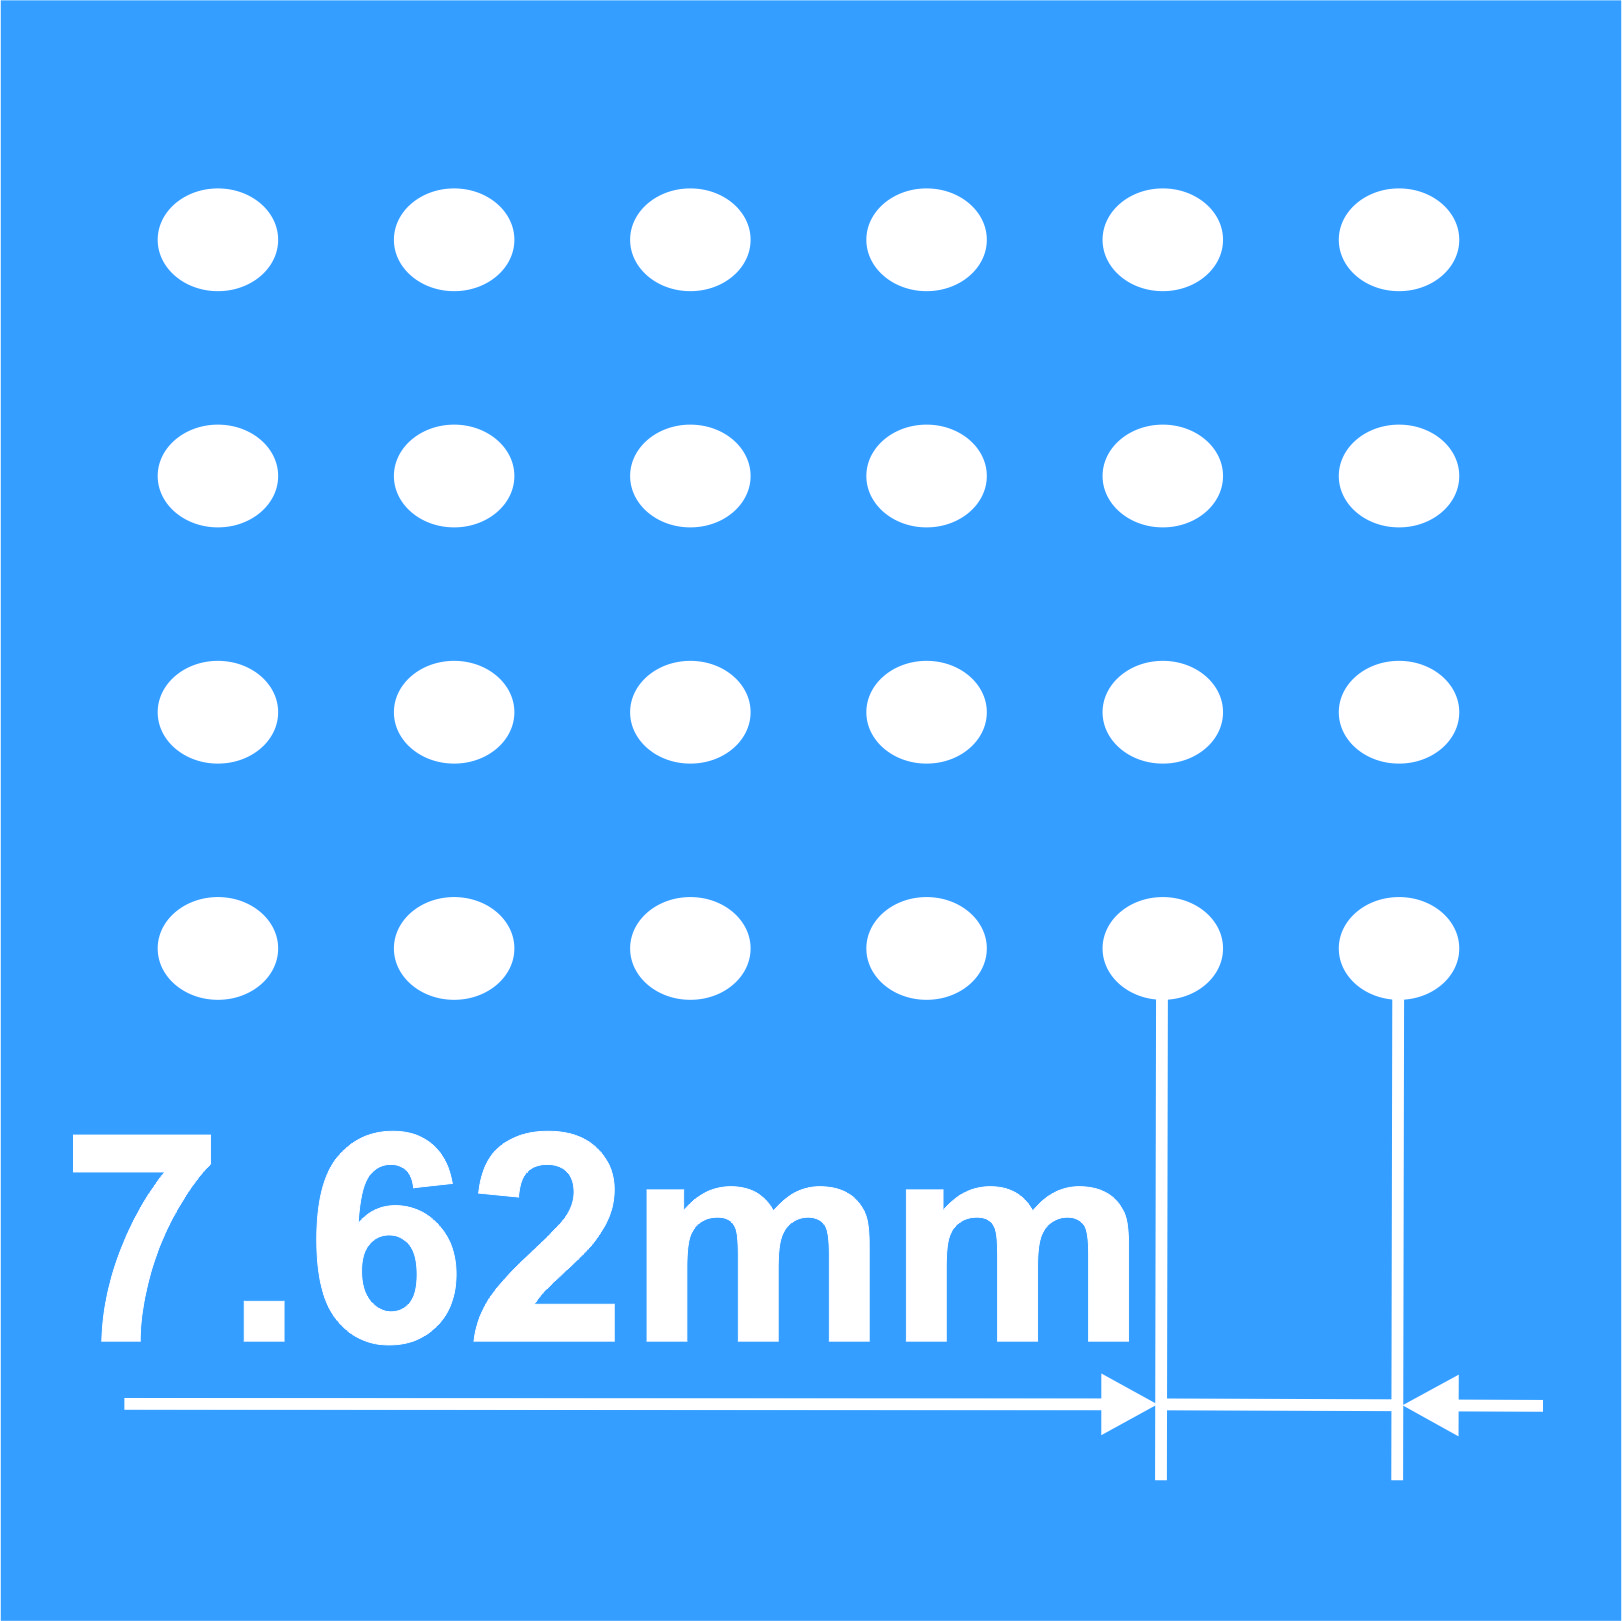 High resolution - 7.62 mm pixel pitch.